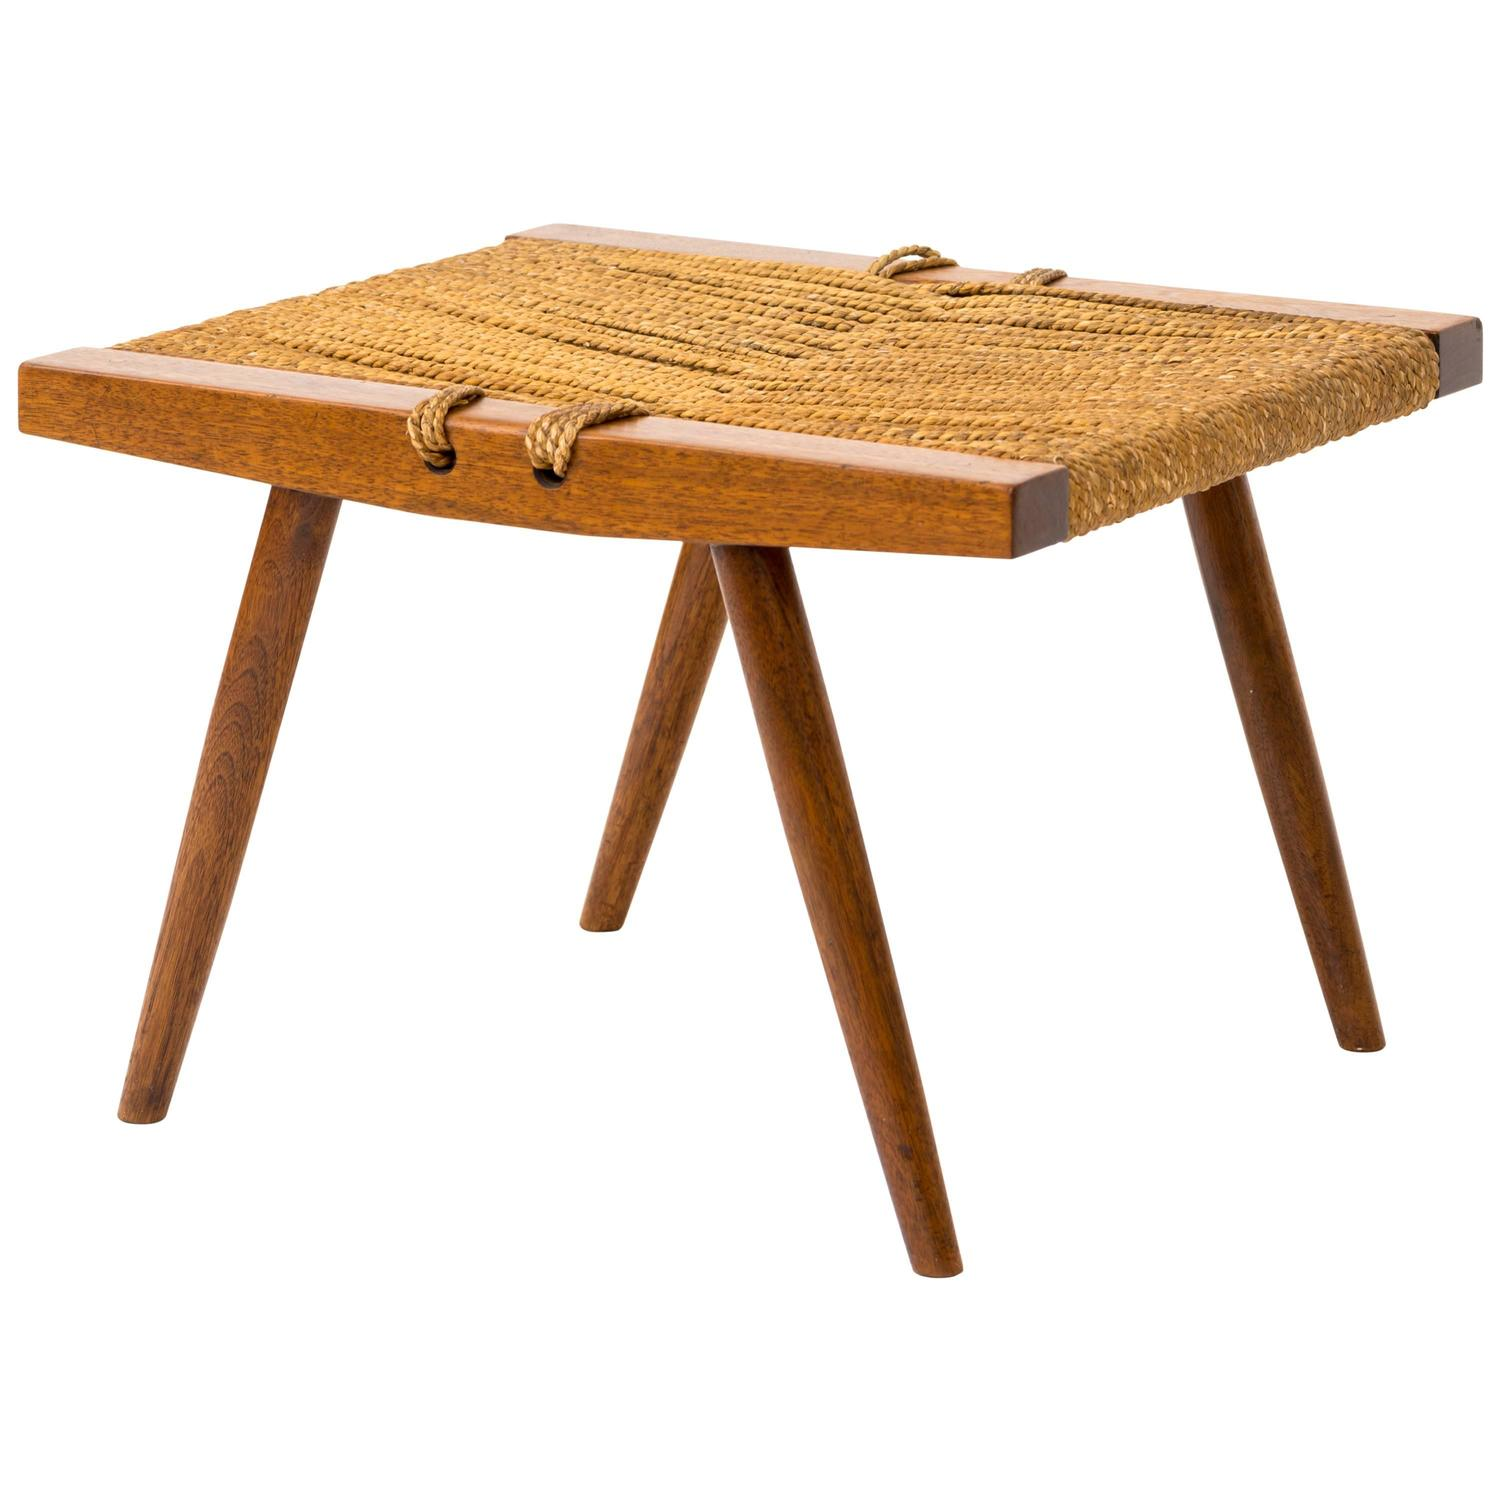 1950s George Nakashima Walnut and Woven Grass Seat Stool For Sale